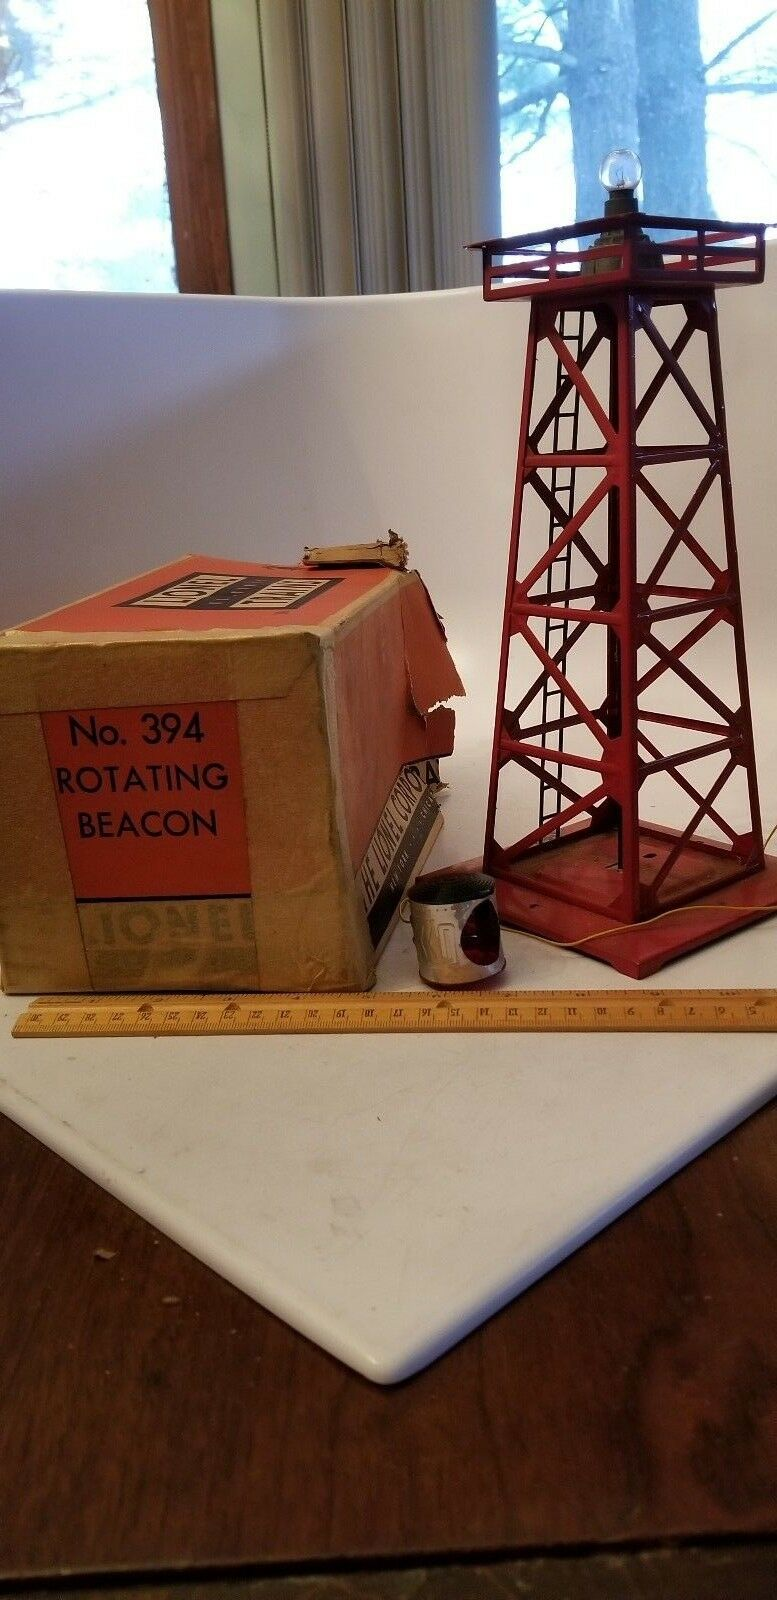 Post War - Lionel - Red redation Beacon - W Box & How to Install & Operate